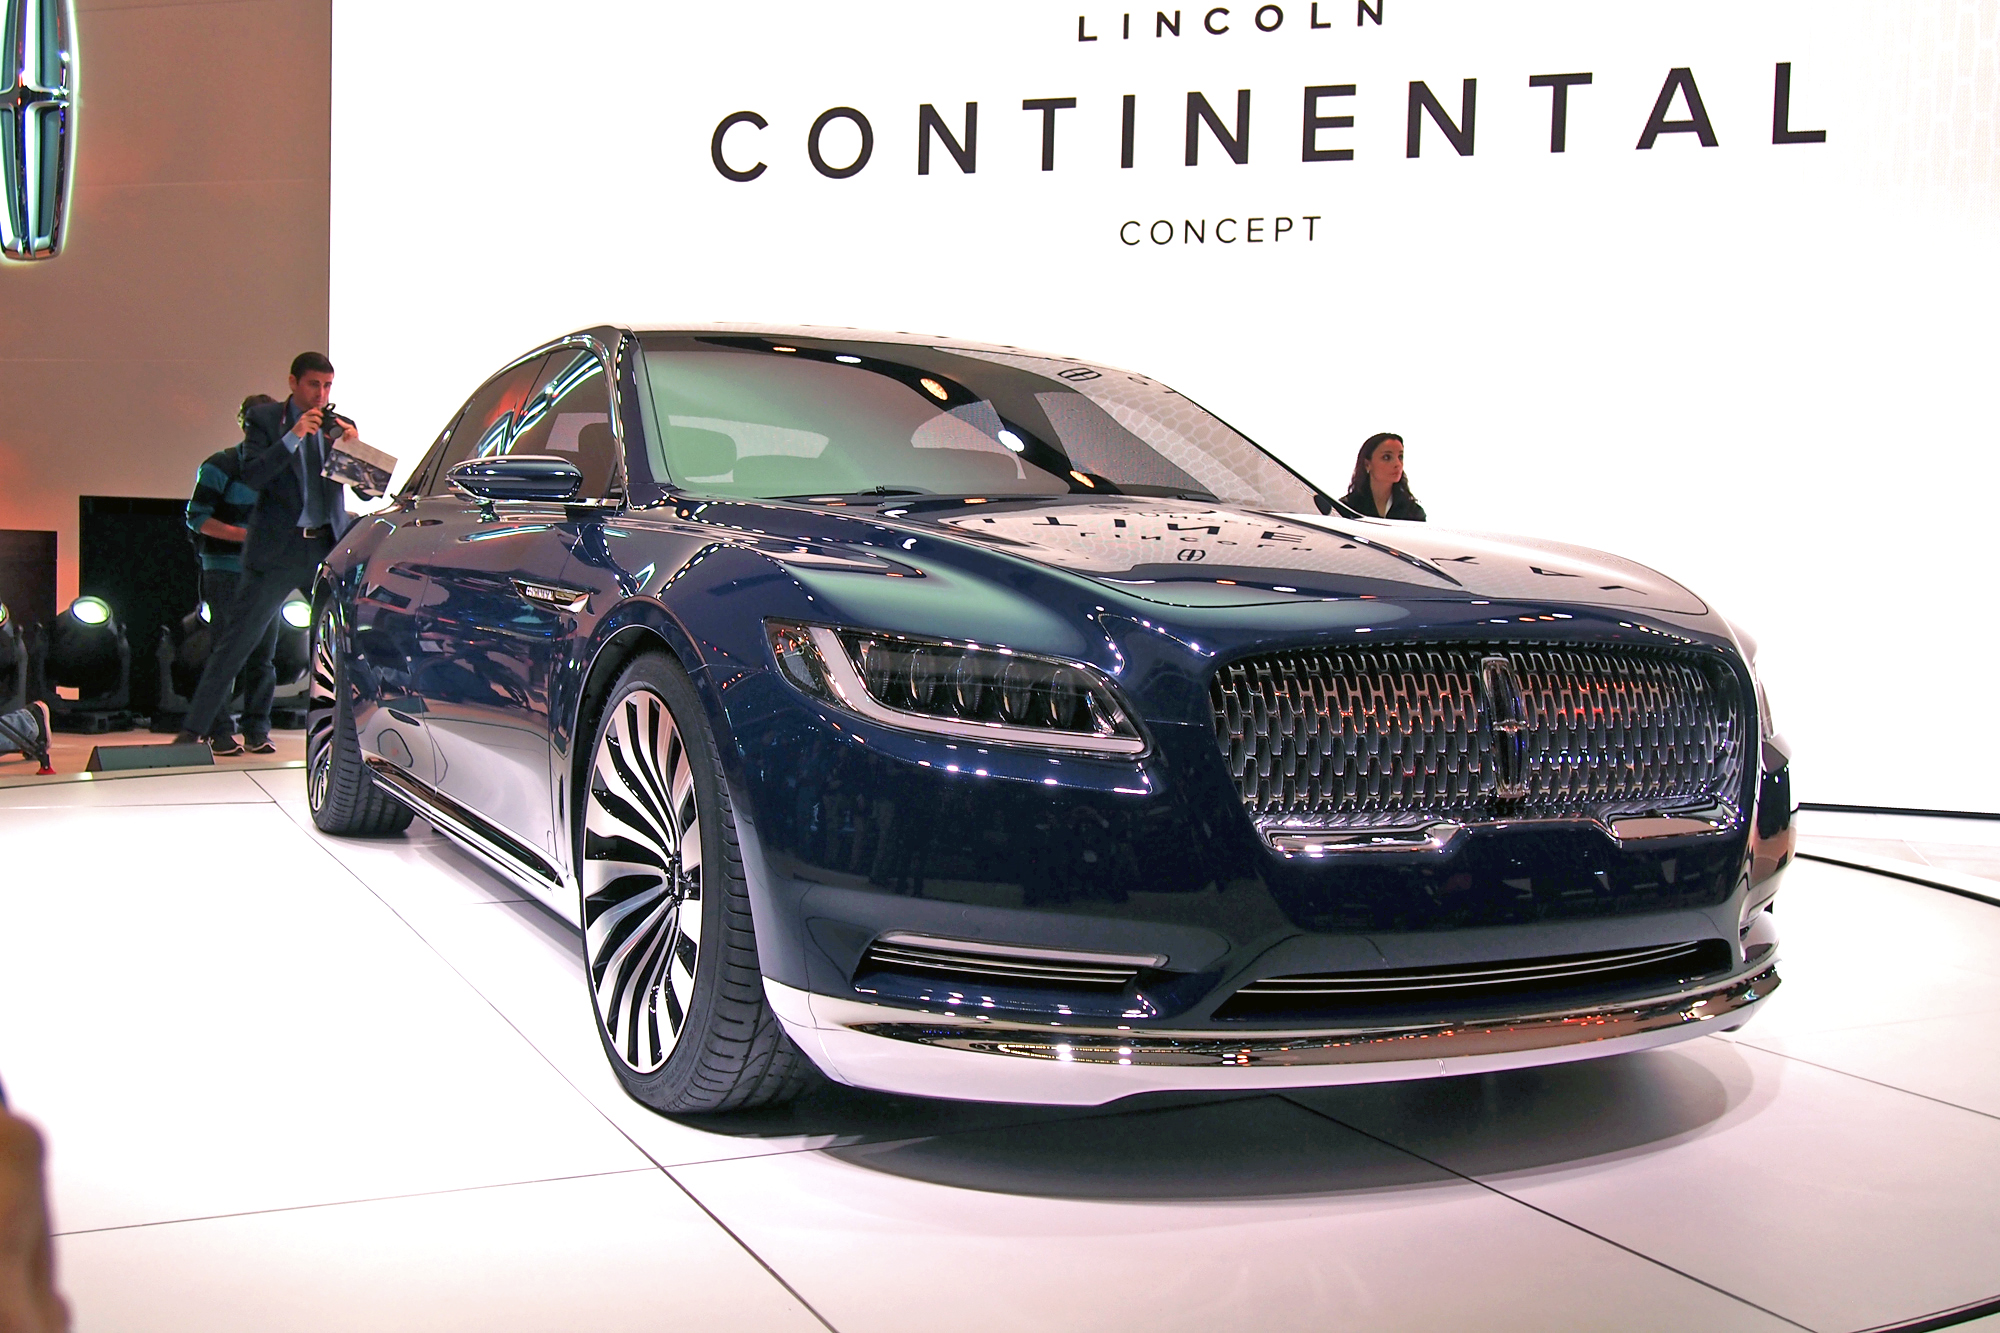 https://www.autoguide.com/blog/wp-content/gallery/lincoln-continental-concept-live-photos-2015-new-york-auto-show/Lincoln-Continental-Concept-.JPG